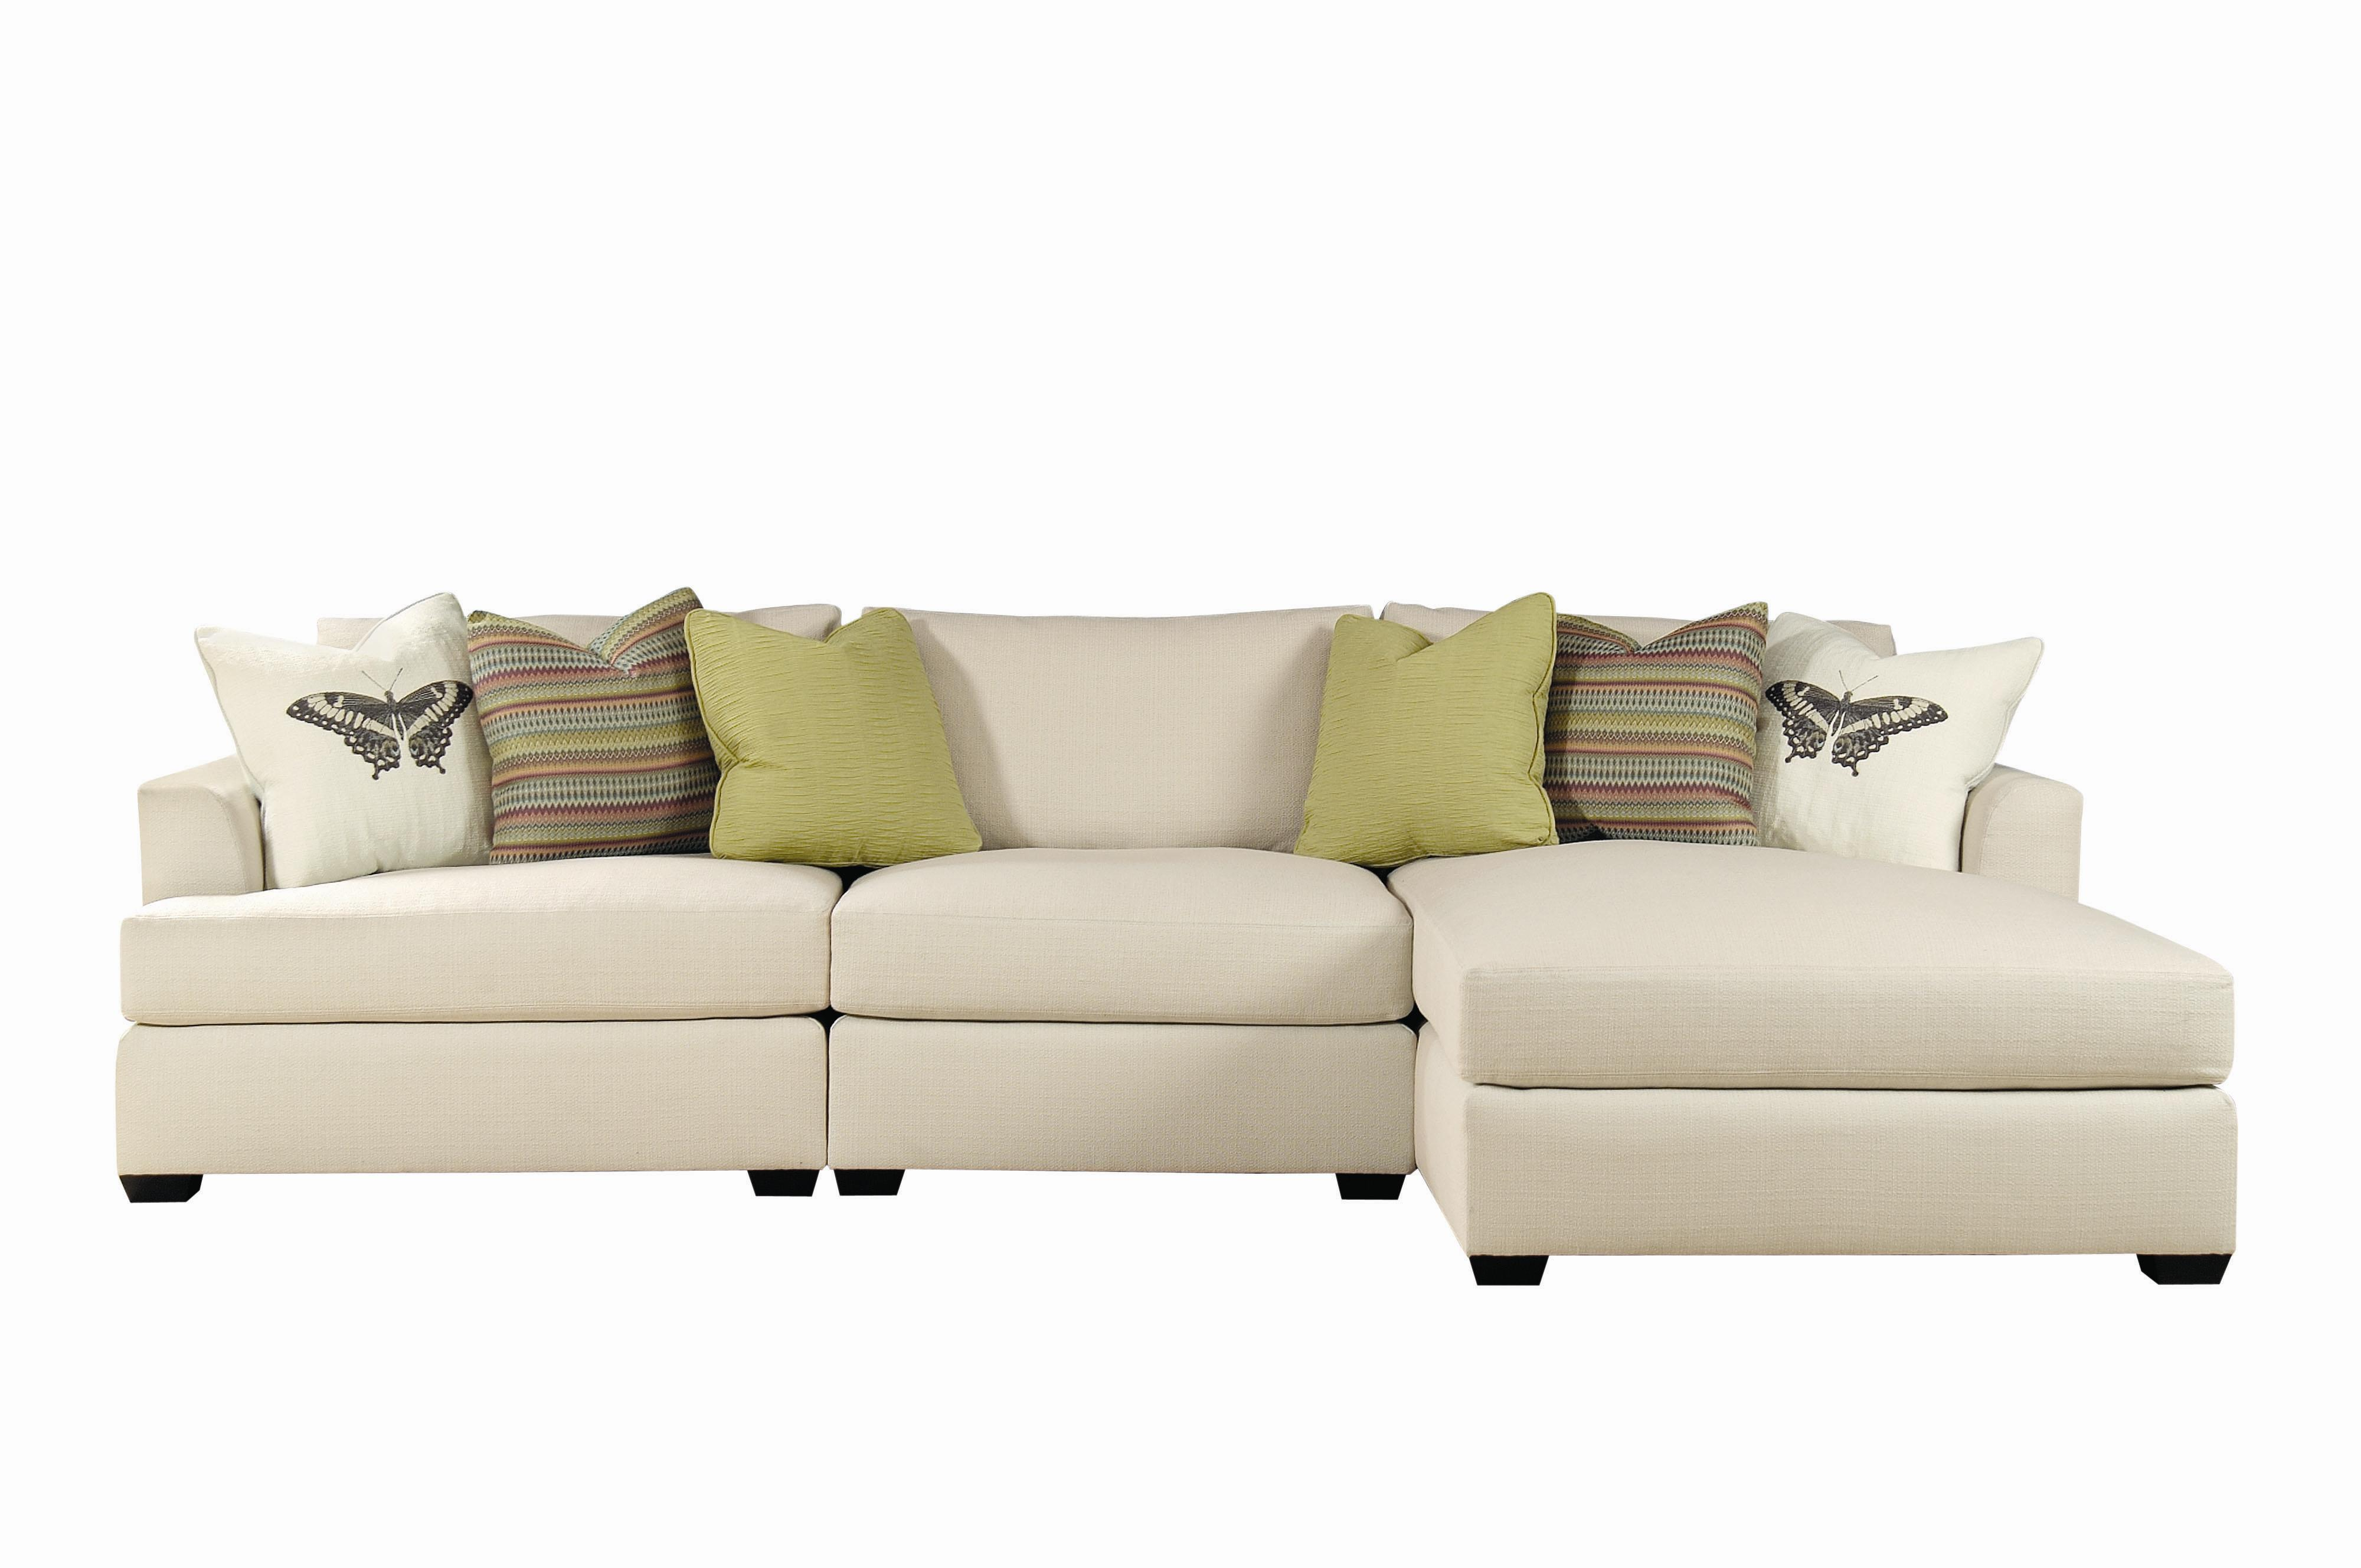 Bernhardt adriana sectional sofa with chaise lounger for Sofas el tresillo